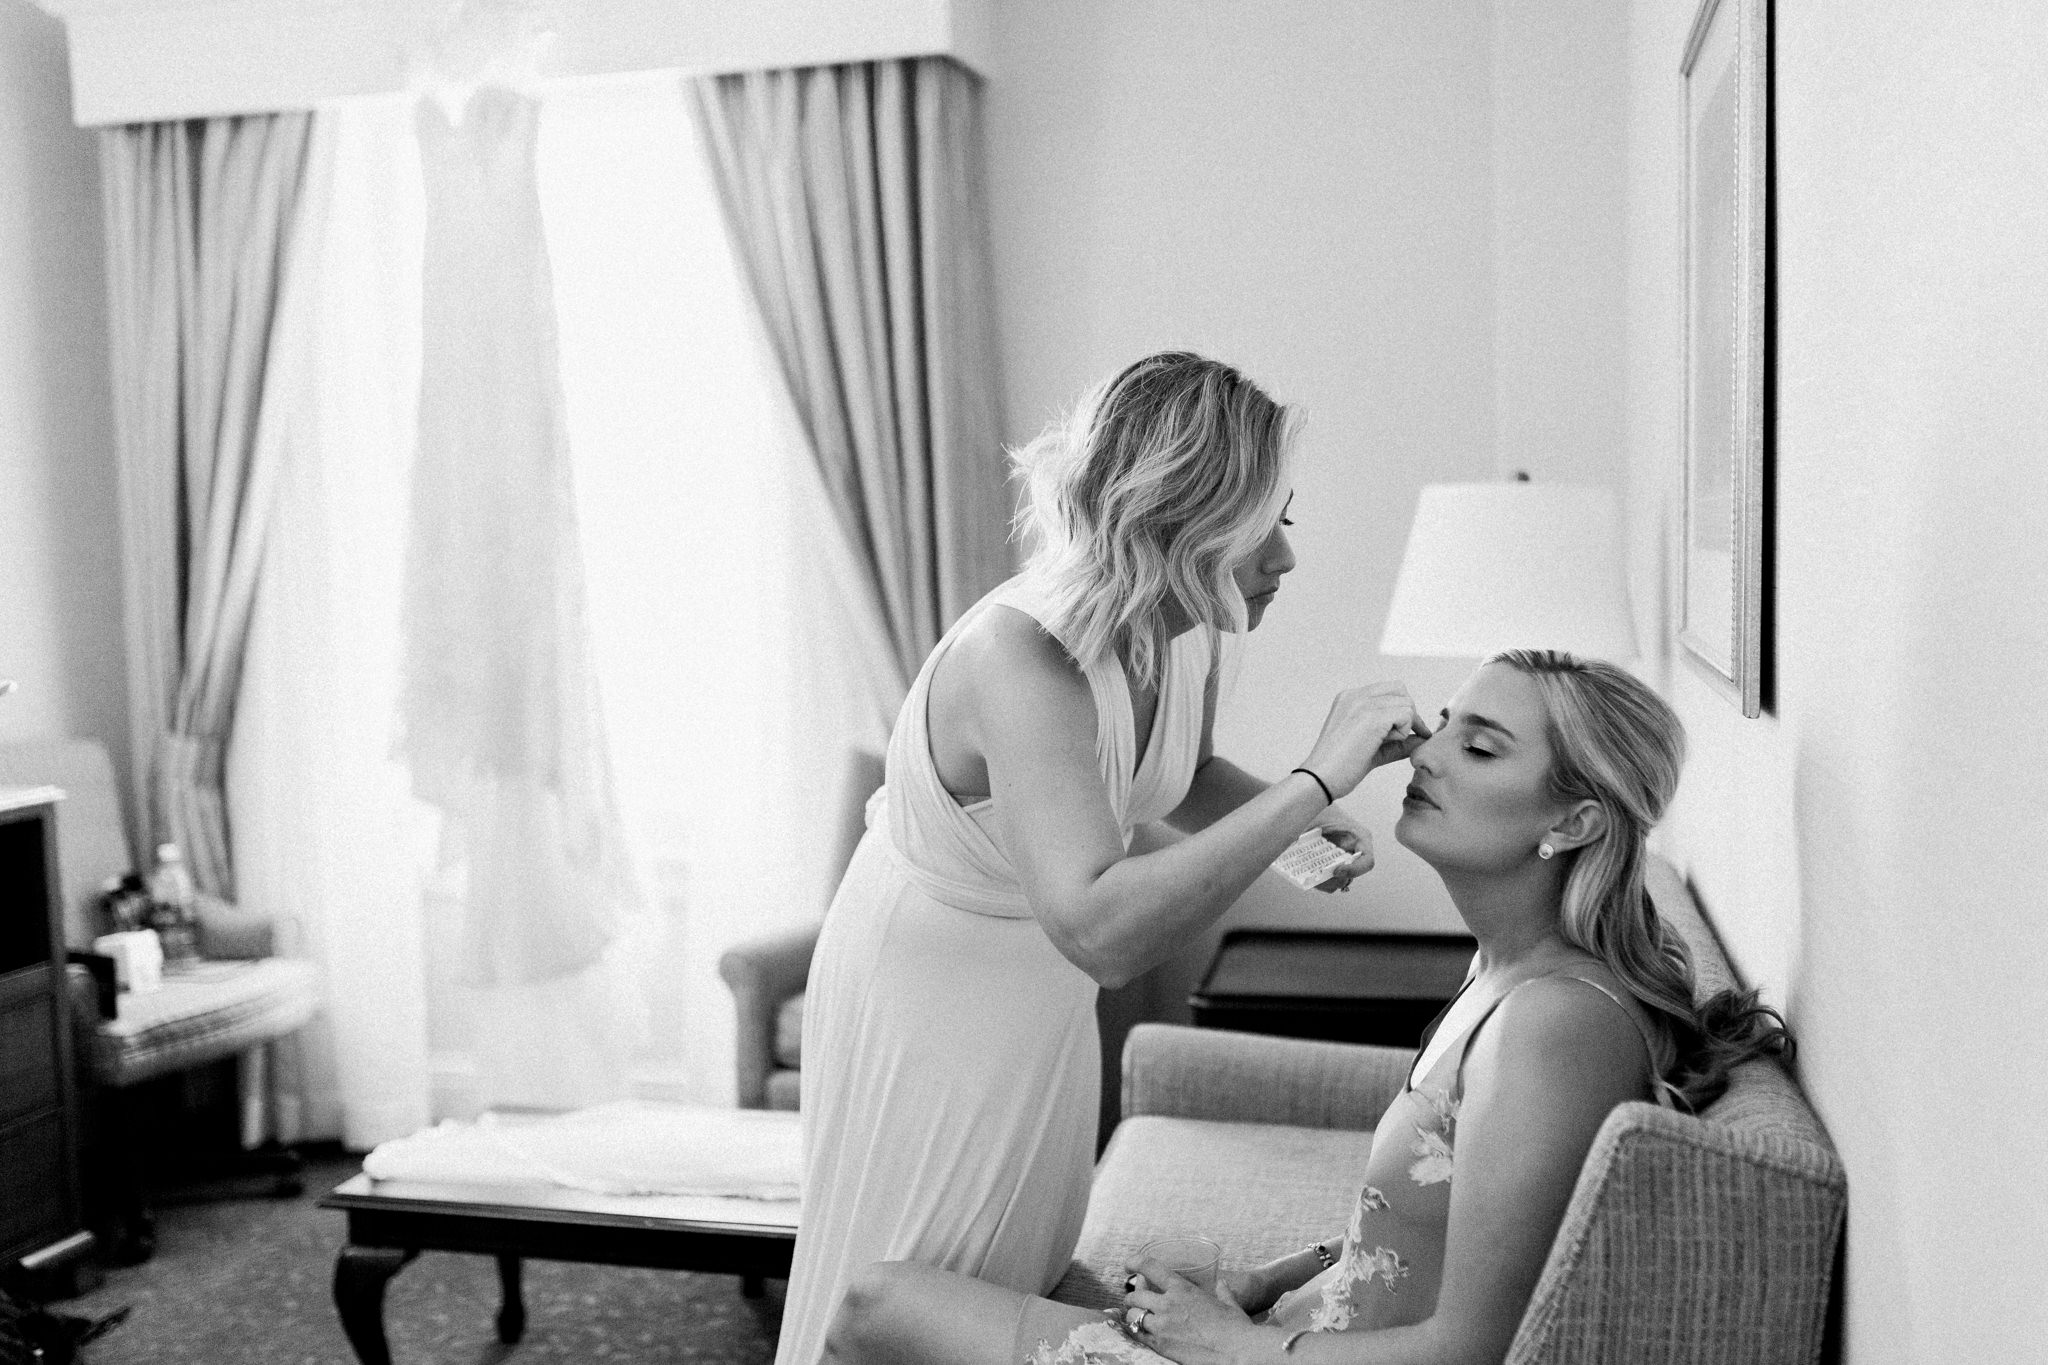 Bride getting makeup done in a hotel room with her dress hanging in the window